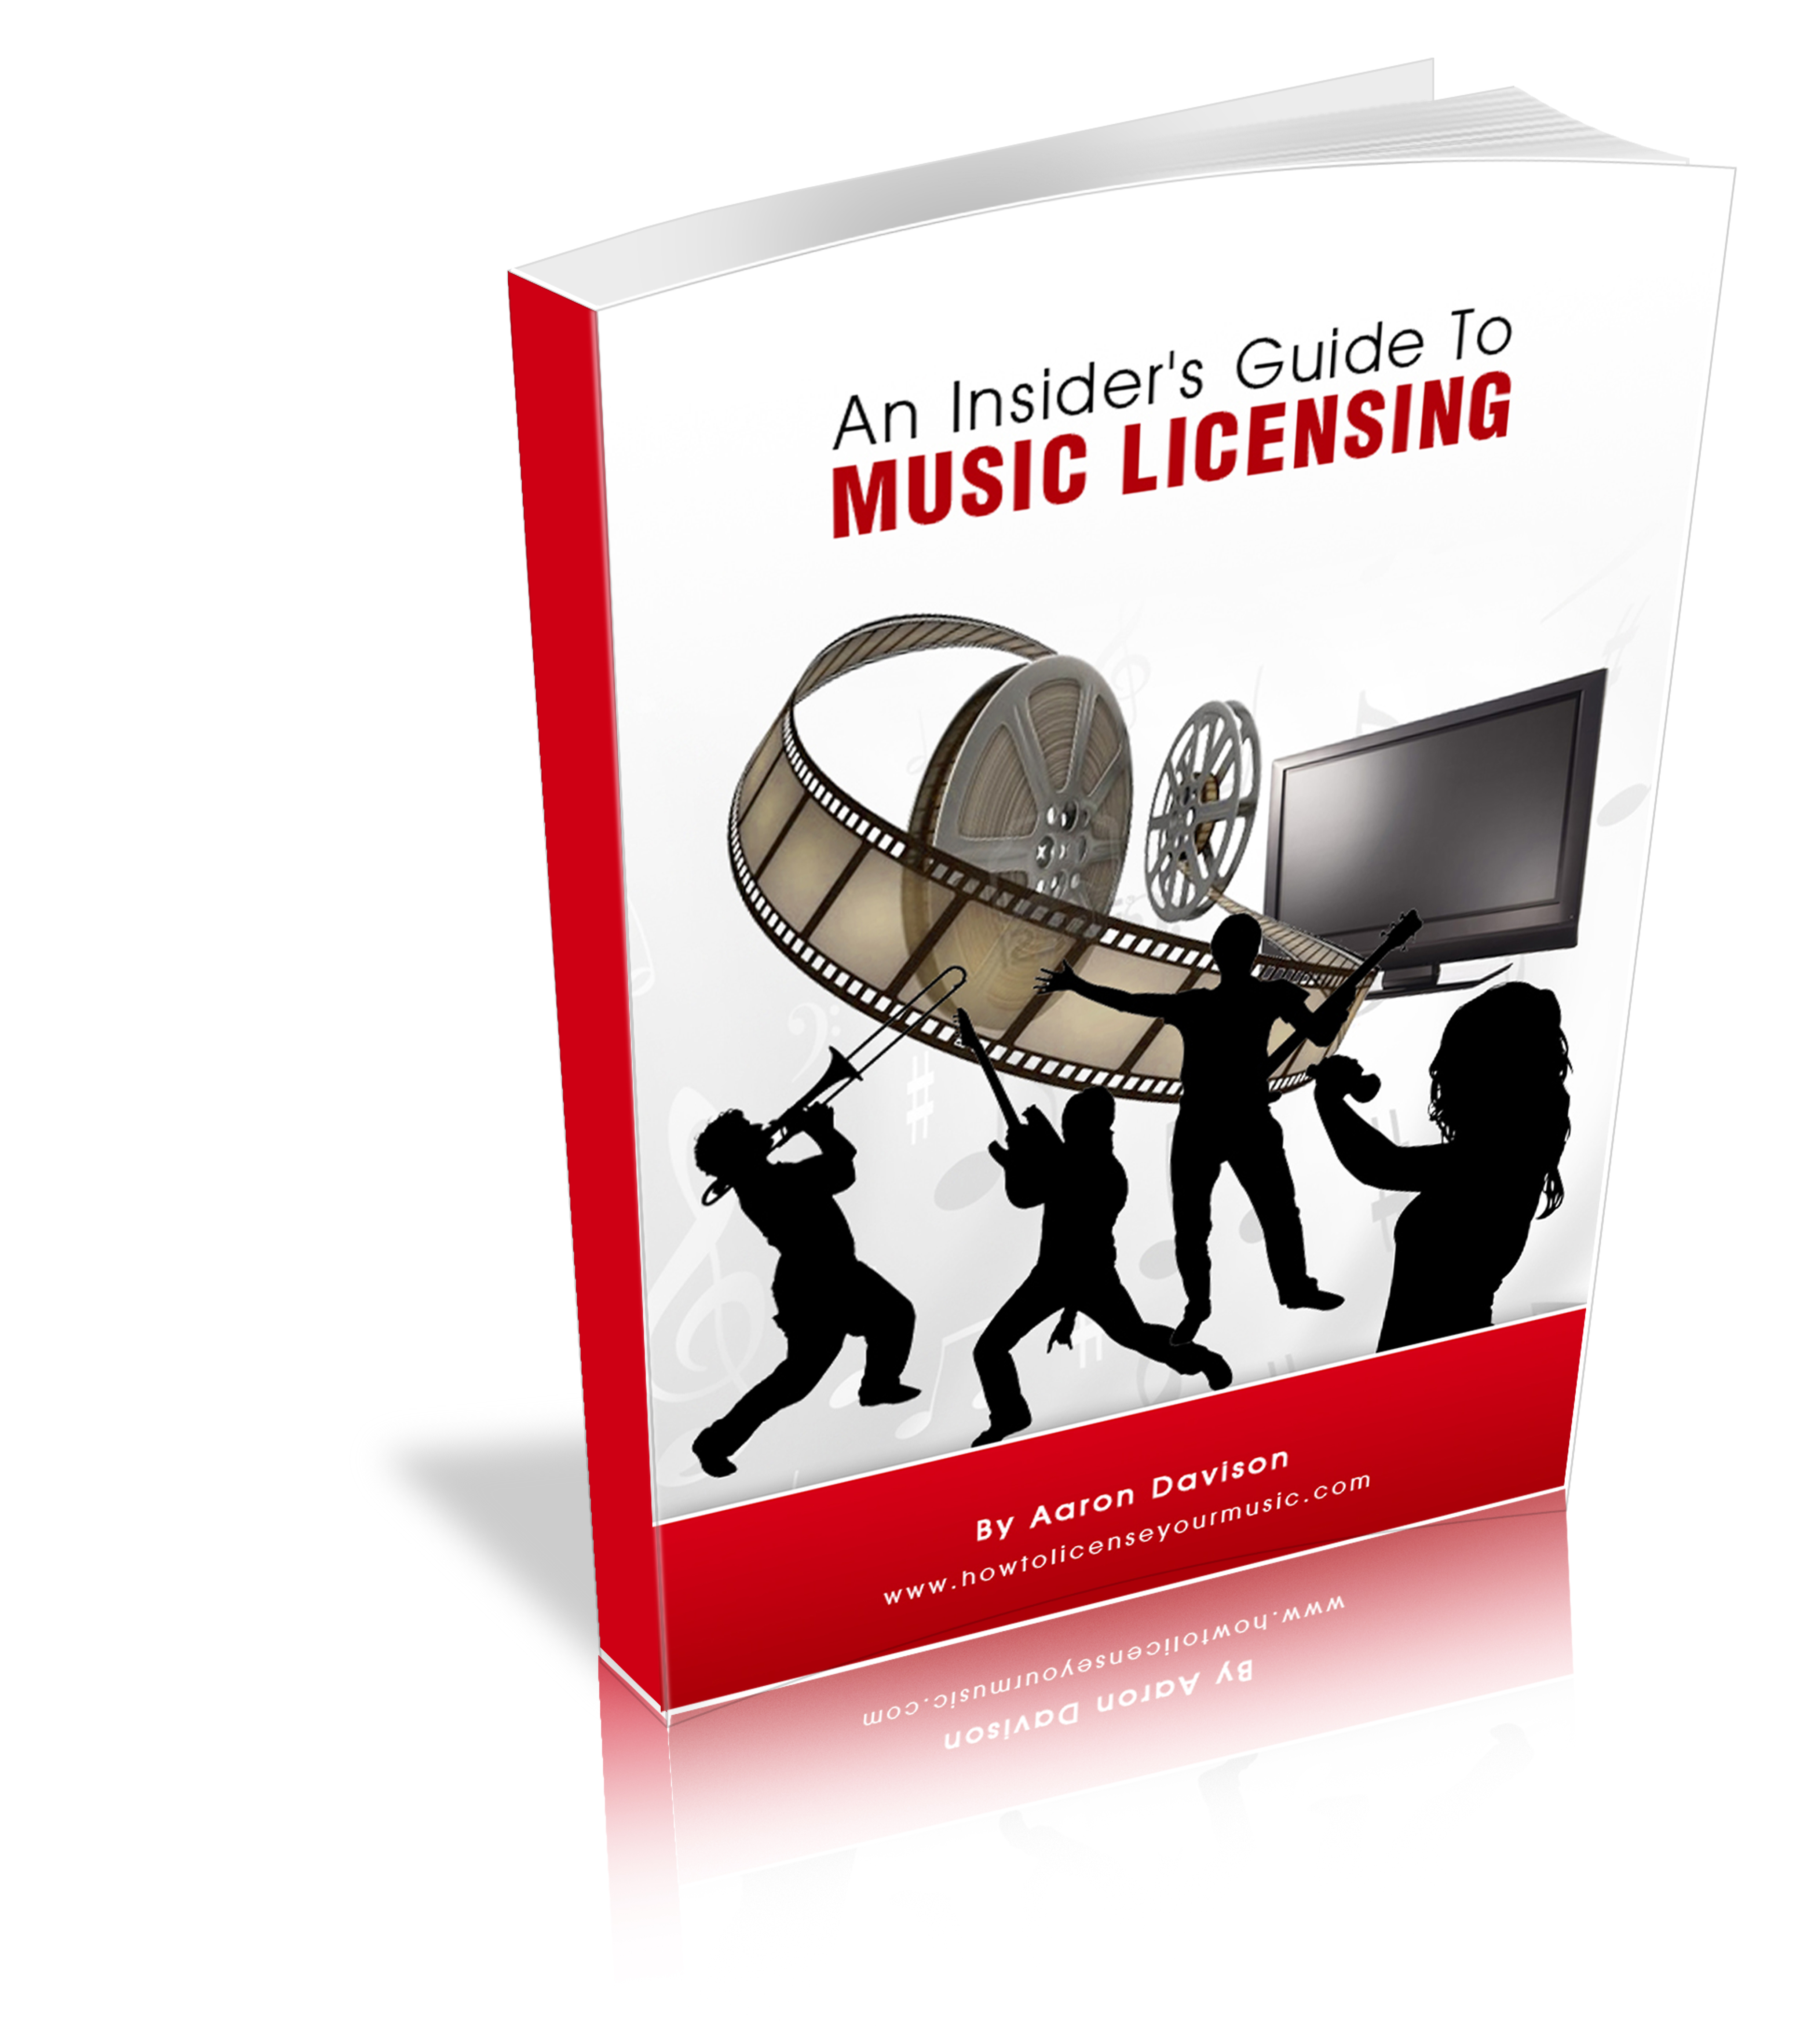 A Songwriters Guide To Music Licensing